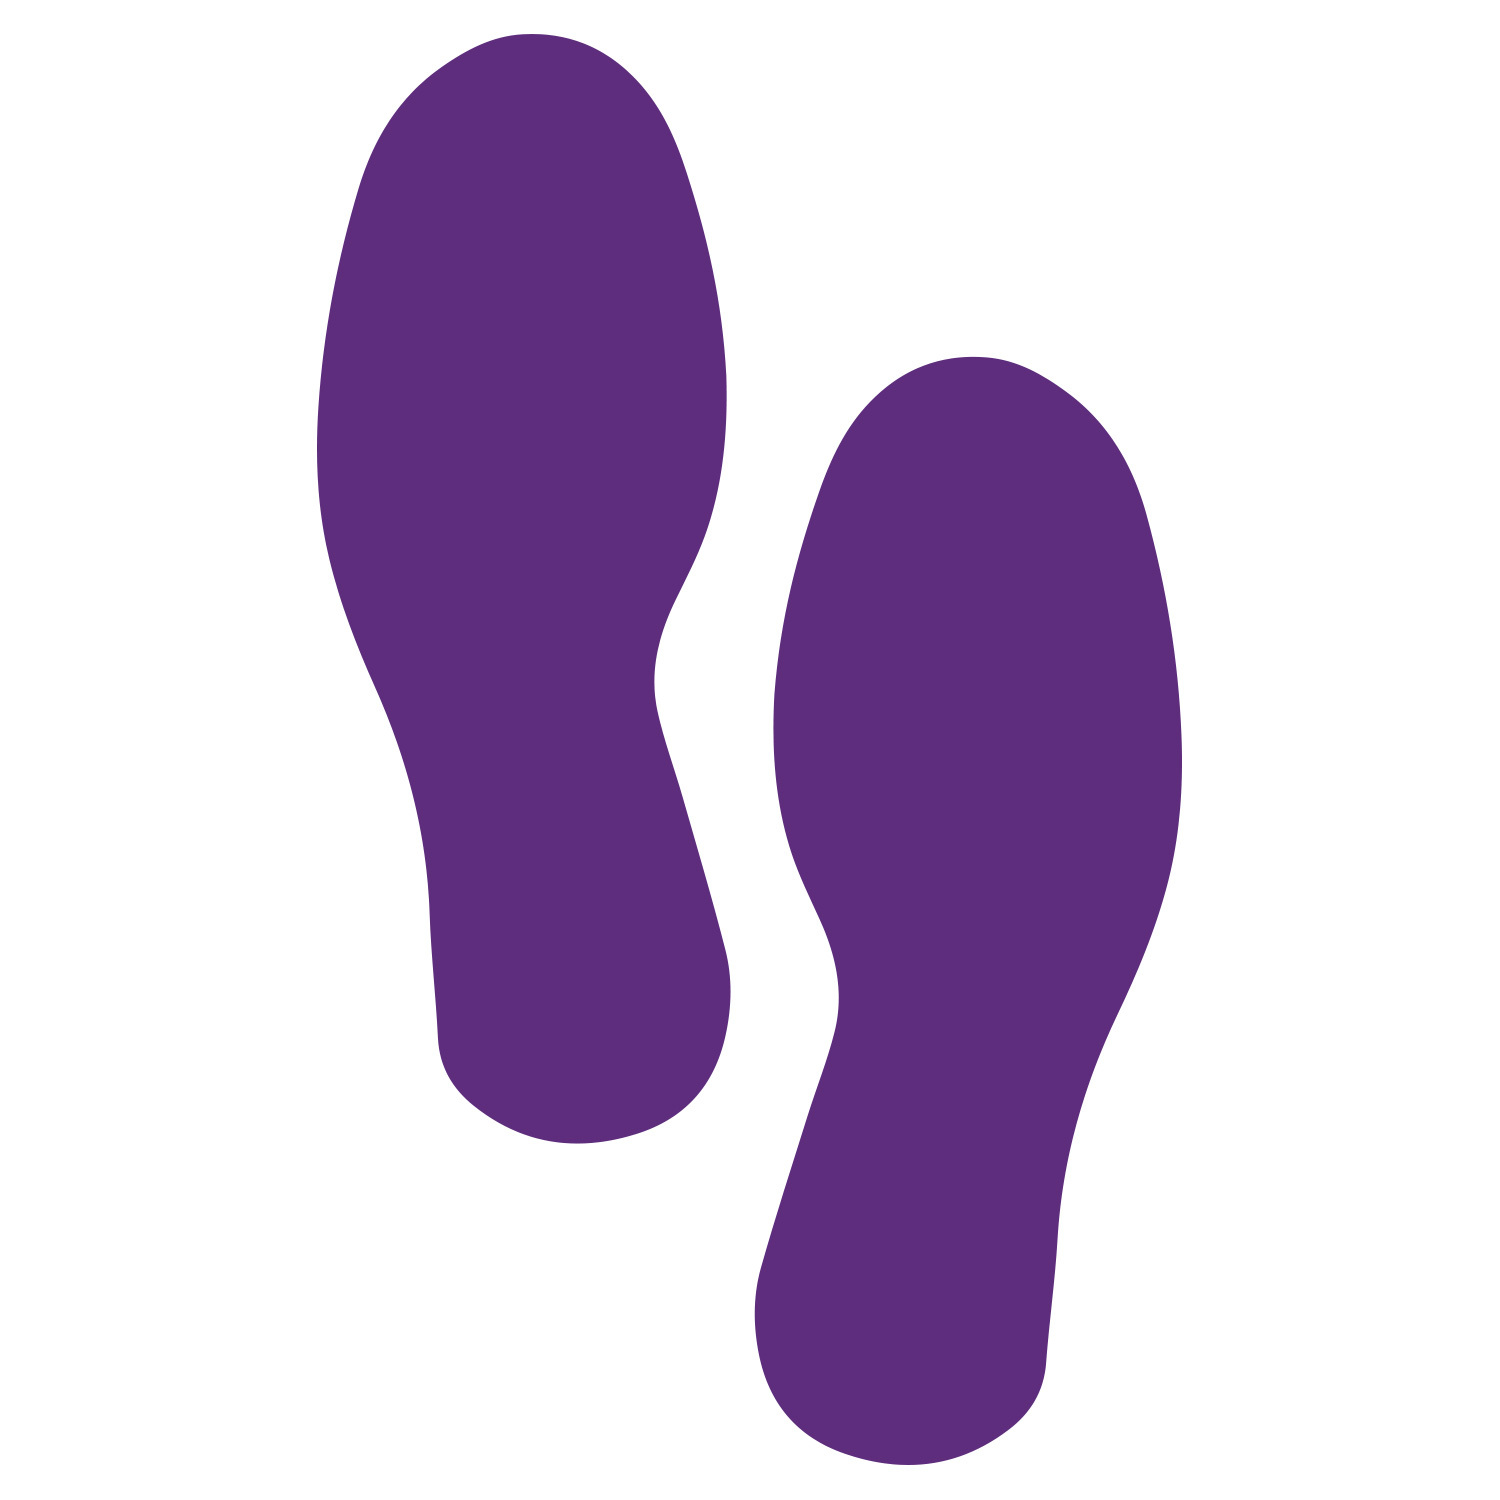 Primary image for LiteMark Large Size Purple Removable Footprint Decals  - Pack of 8 (4 Pairs)